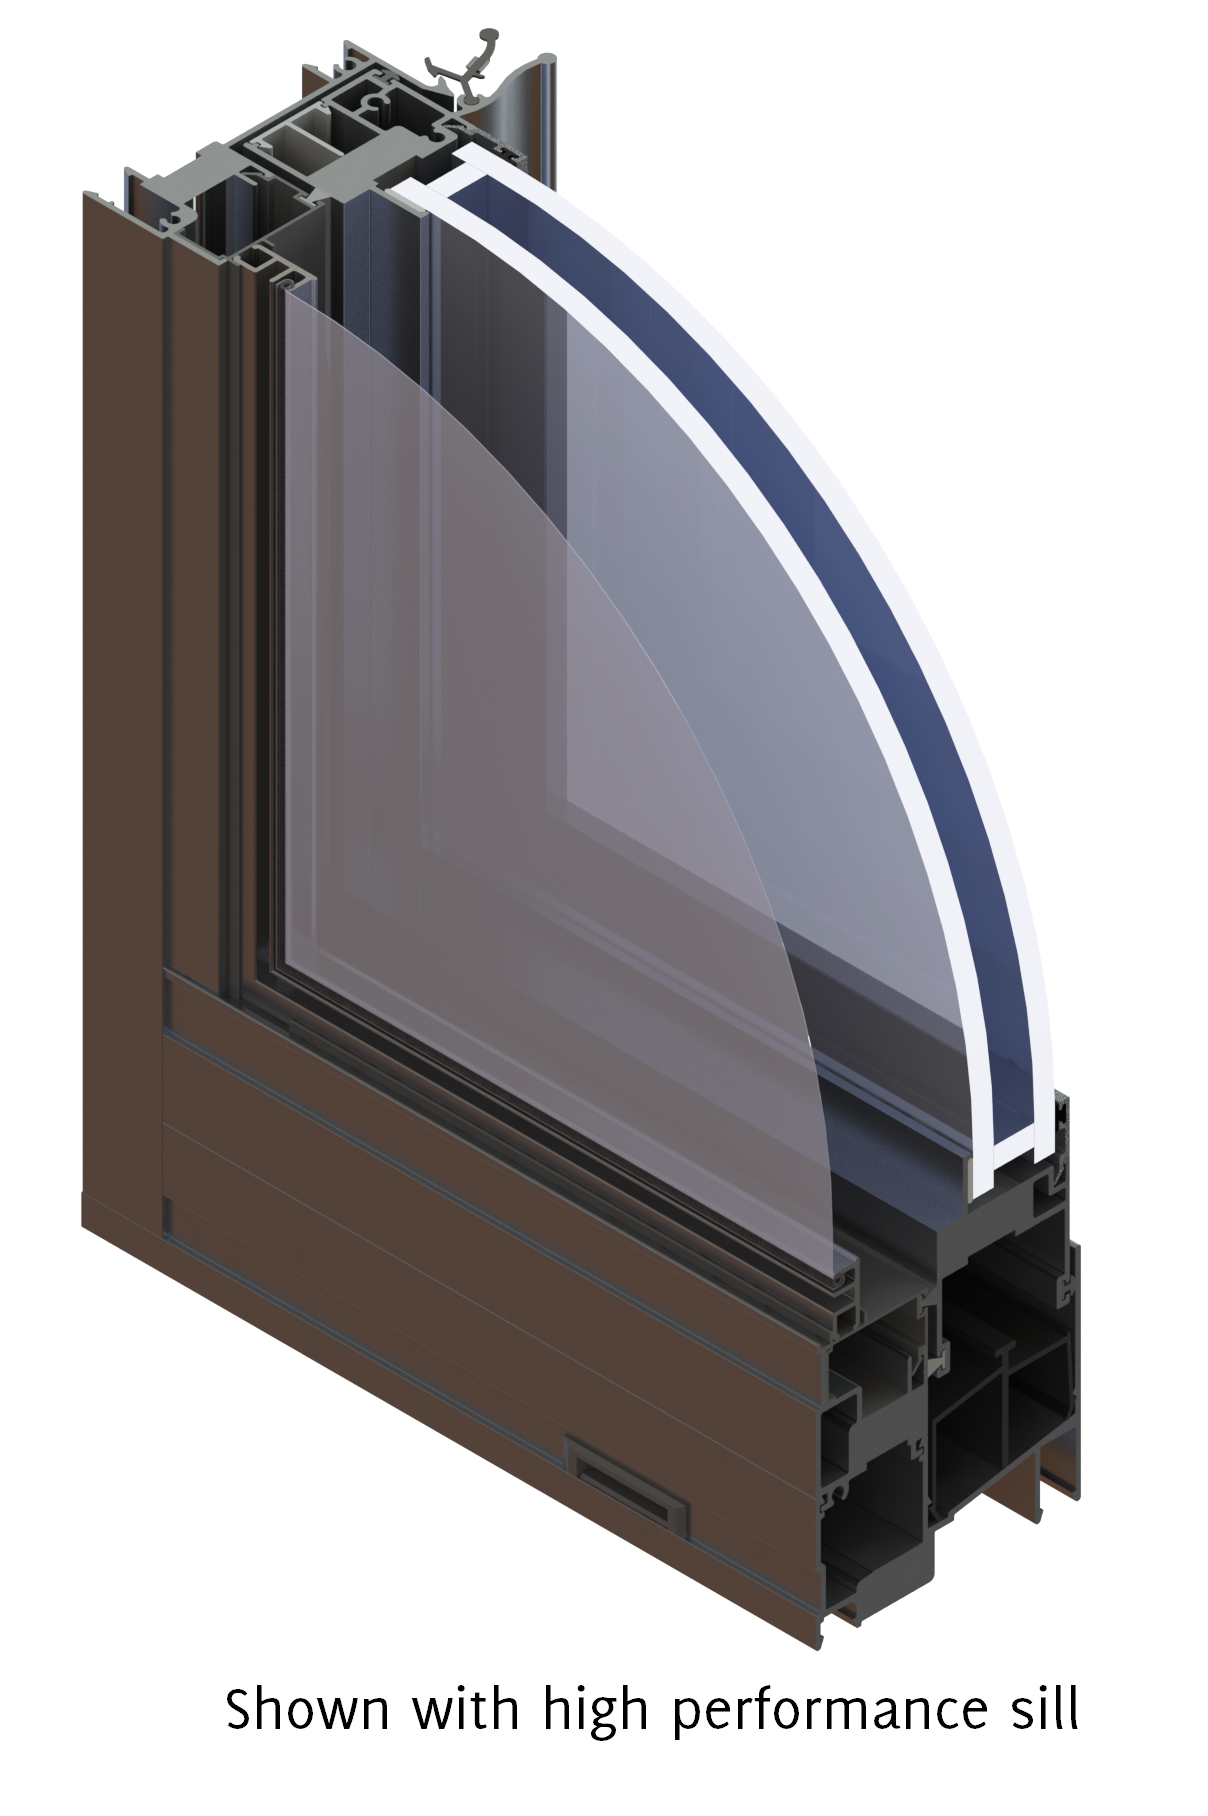 3 188 Quot M 950 Series Horizontal Slider Windows Wojan Window